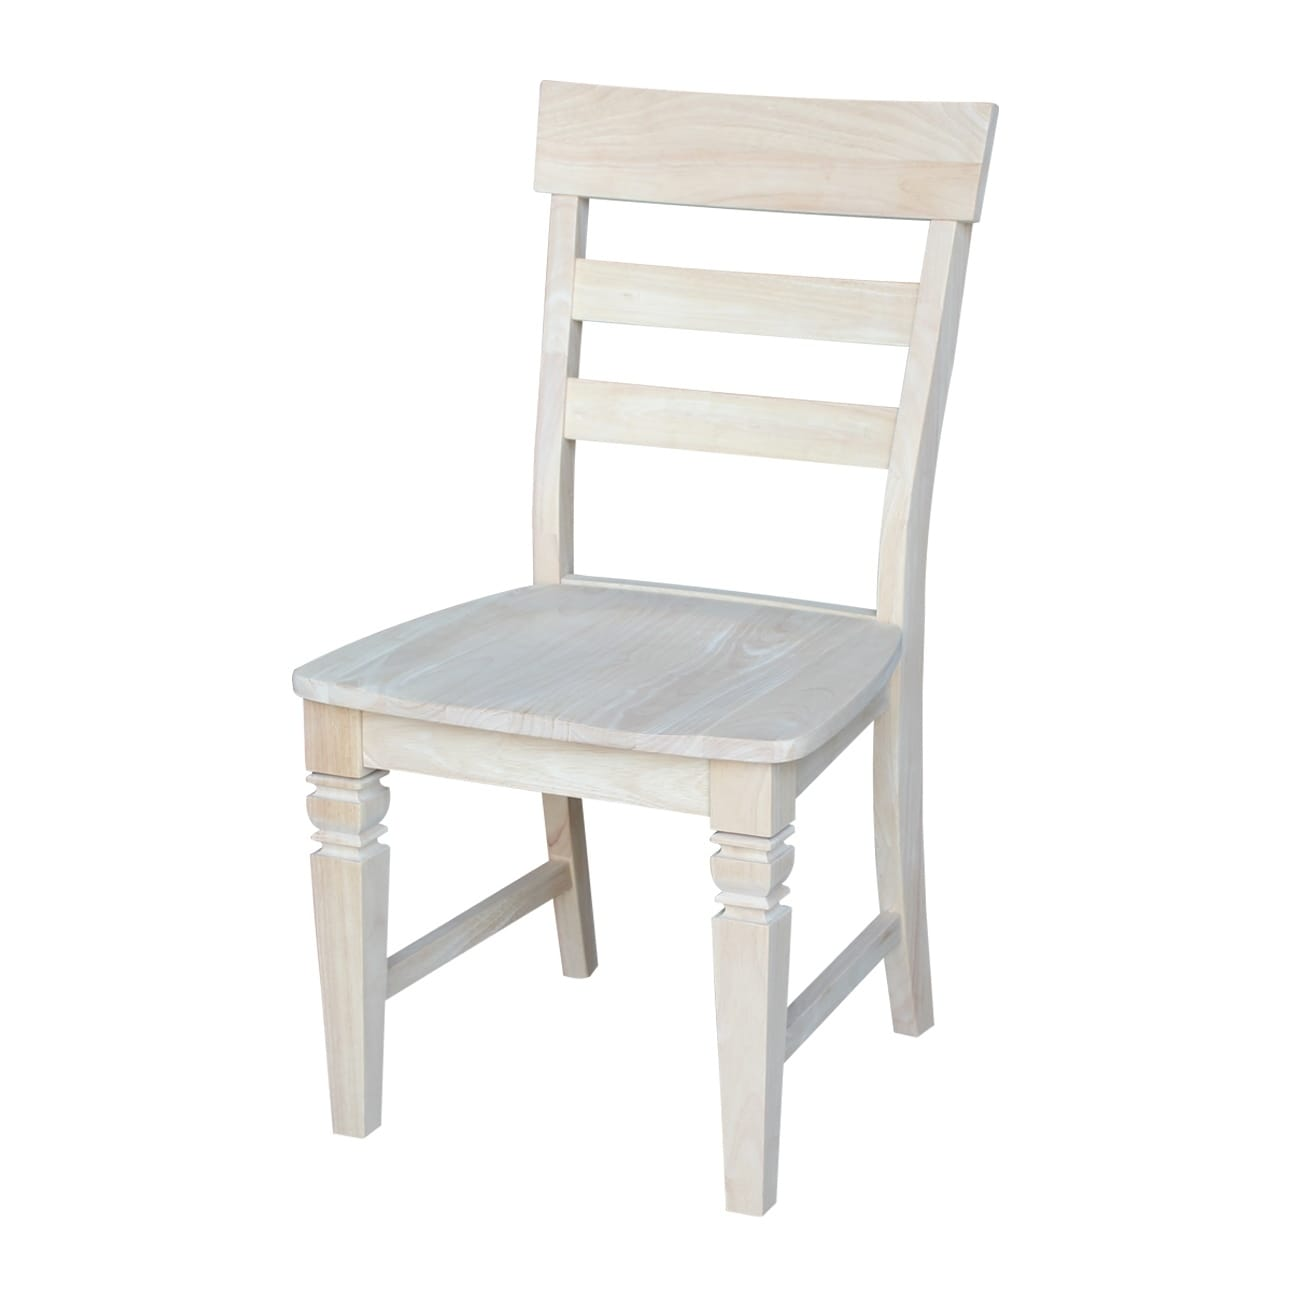 unfinished wooden chairs cheap where to buy dining room wood international concepts c 19p java chair with solid seat